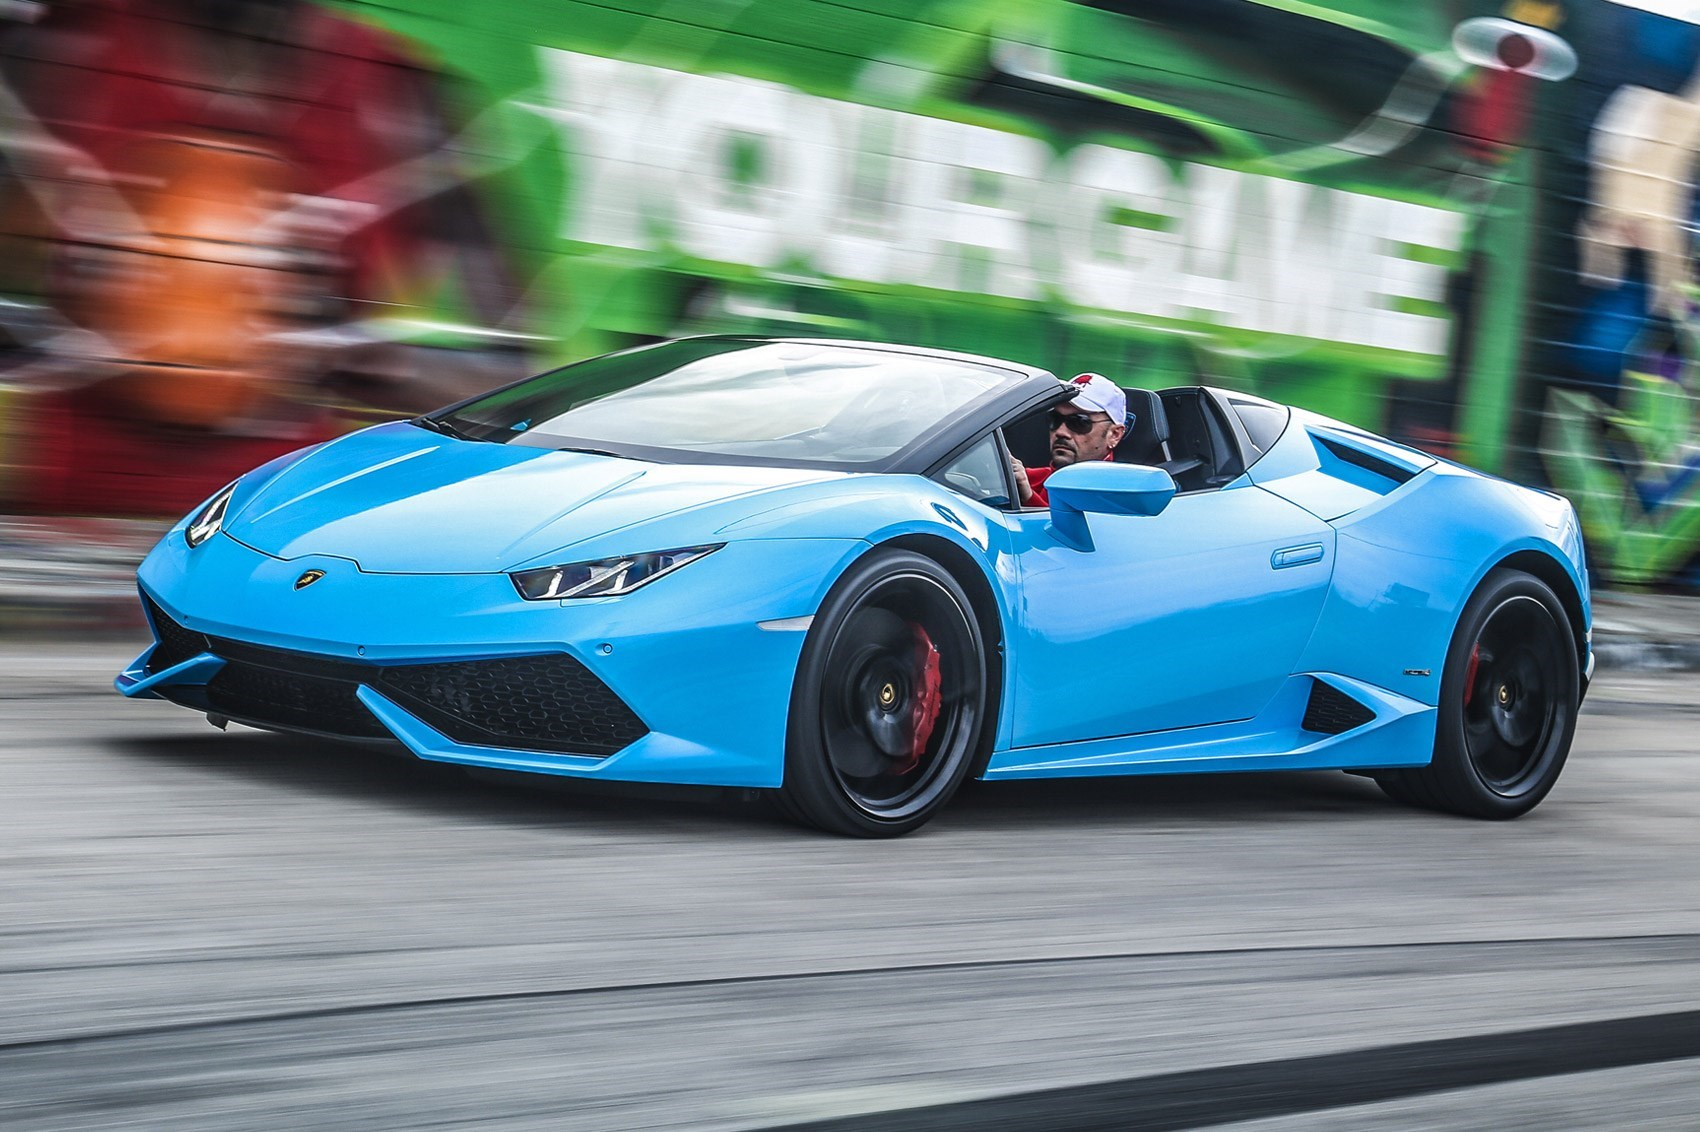 Lamborghini Huracan Lp610 4 Spyder 2016 Review Car